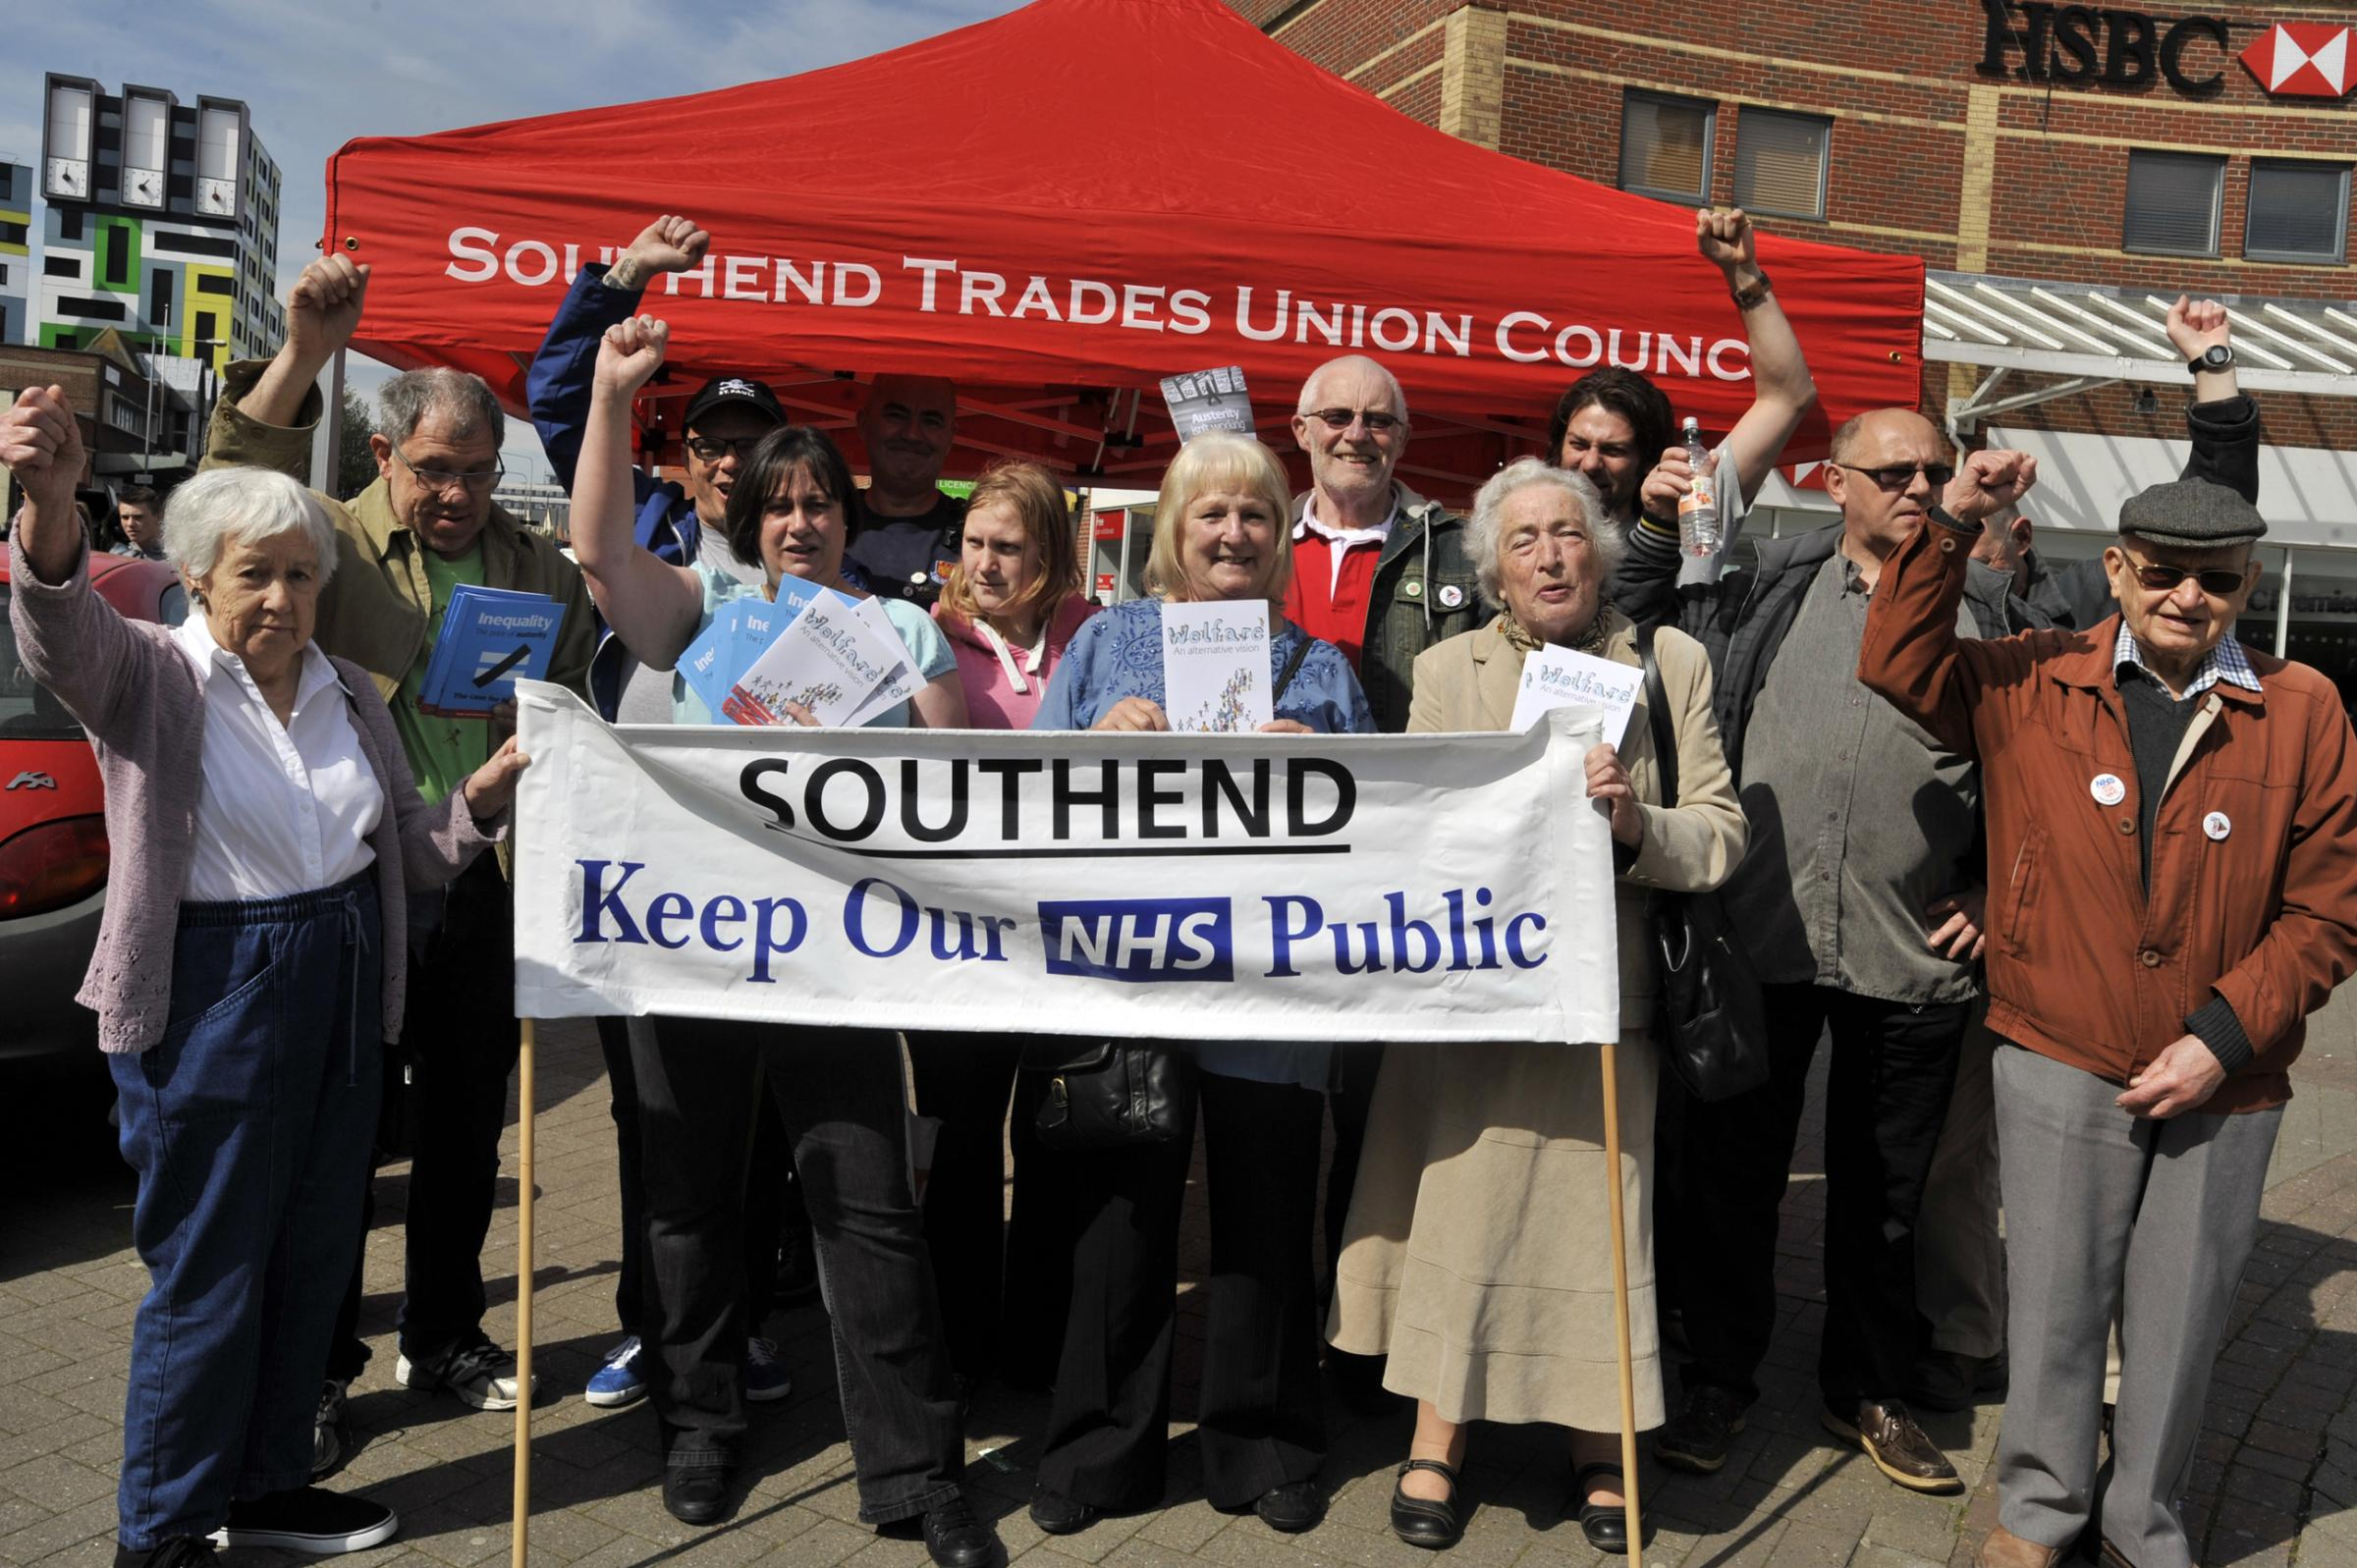 No to cuts – campaigners collected names on petitions